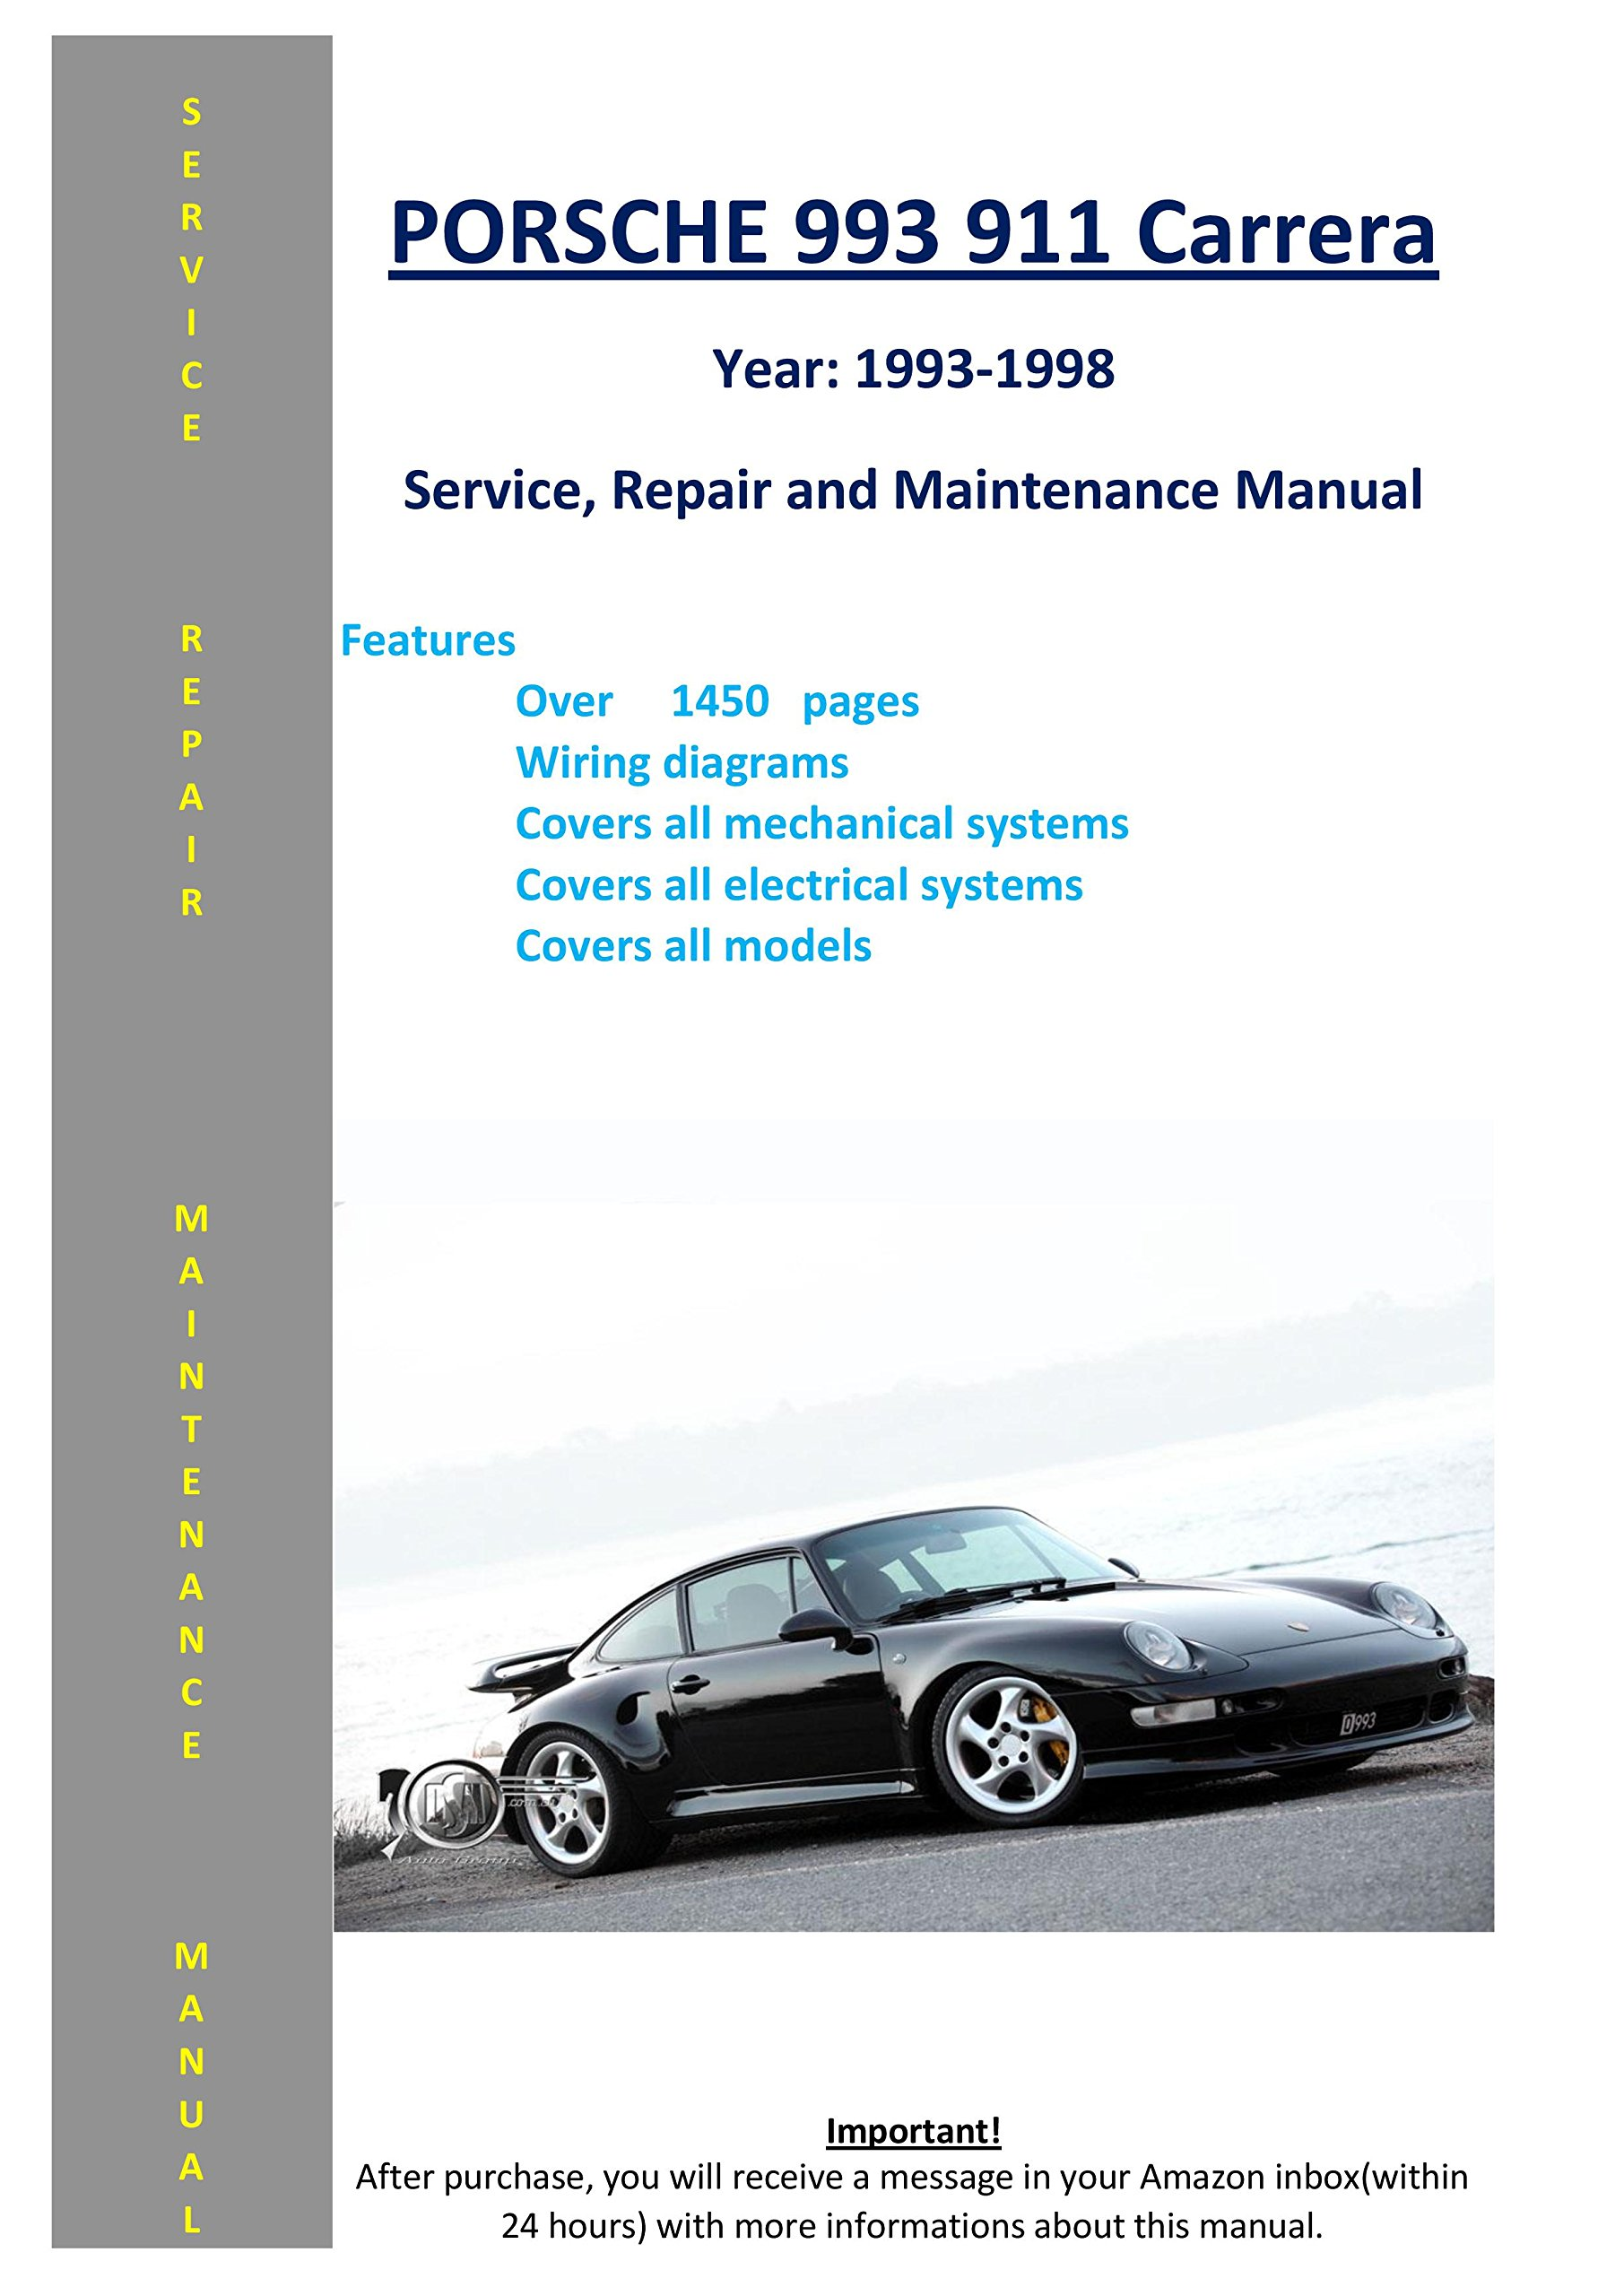 Porsche 993 Carrera 911 From 1993-1998 Service Repair Maintenance Manual:  SoftAuto Manuals: 5687202036010: Amazon.com: Books